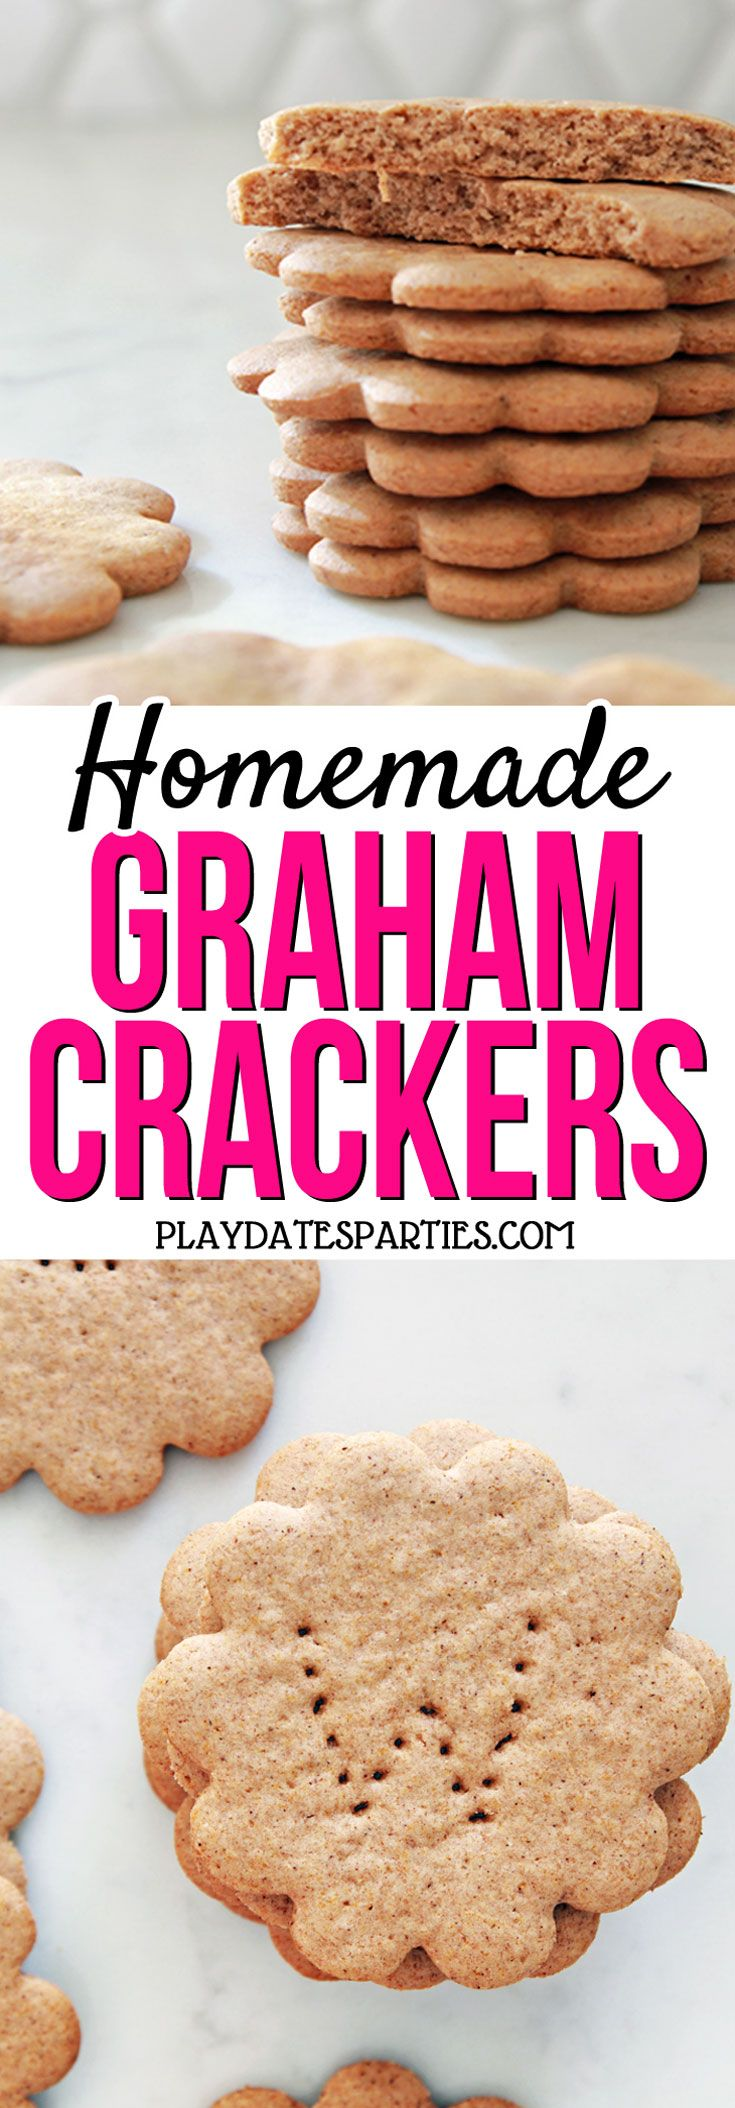 You AND the kids will be thrilled with these homemade graham crackers made with honey and cinnamon. Head over to playdatesparties.com to get the recipe, tips and tricks, and to find out how the kids can get involved in making them too!  #cookingwithkids #kidfriendly #baking #recipe